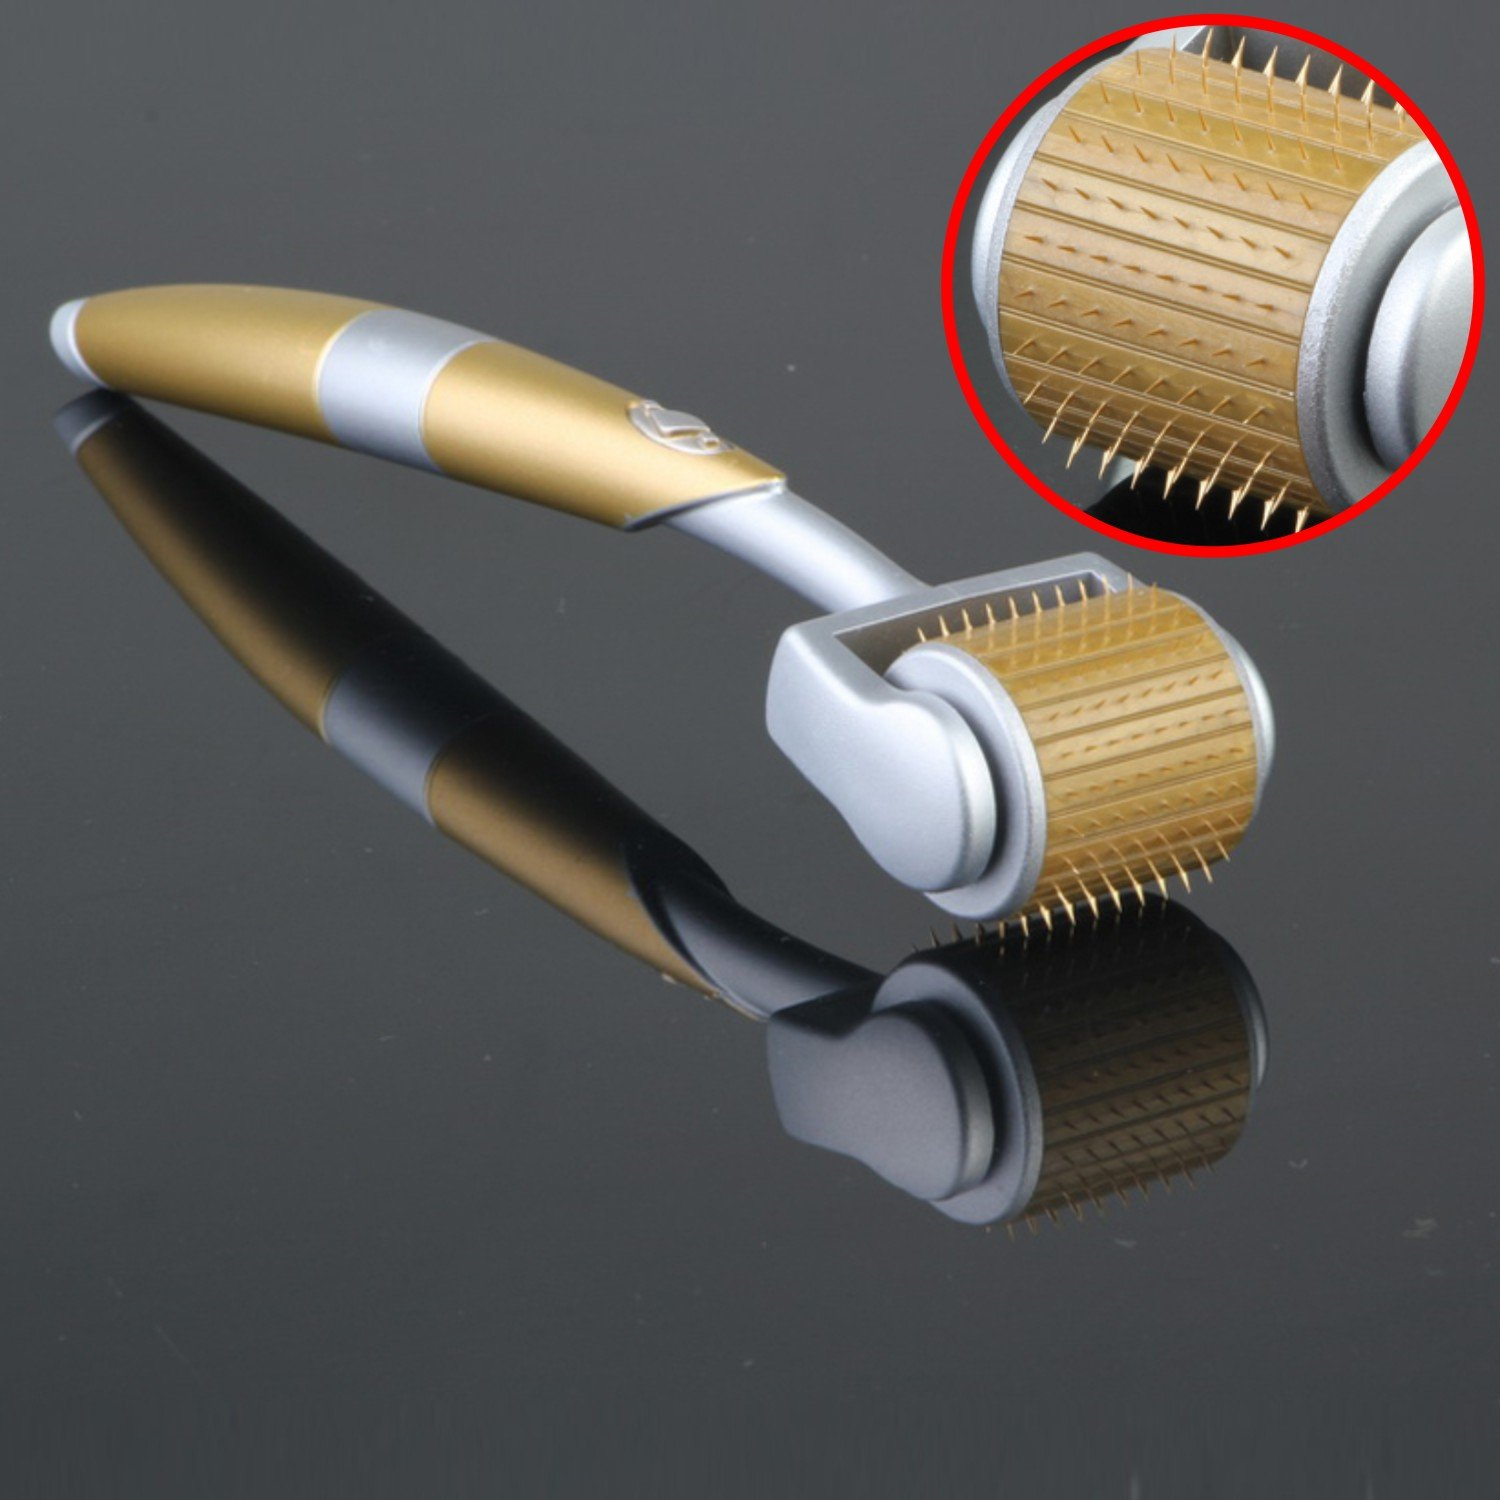 Derma Roller 0.25mm Micro Needle Roller Skin Care Titanium Dermaroller for Anti-Ageing Acne Wrinkles Hair Loss Feili